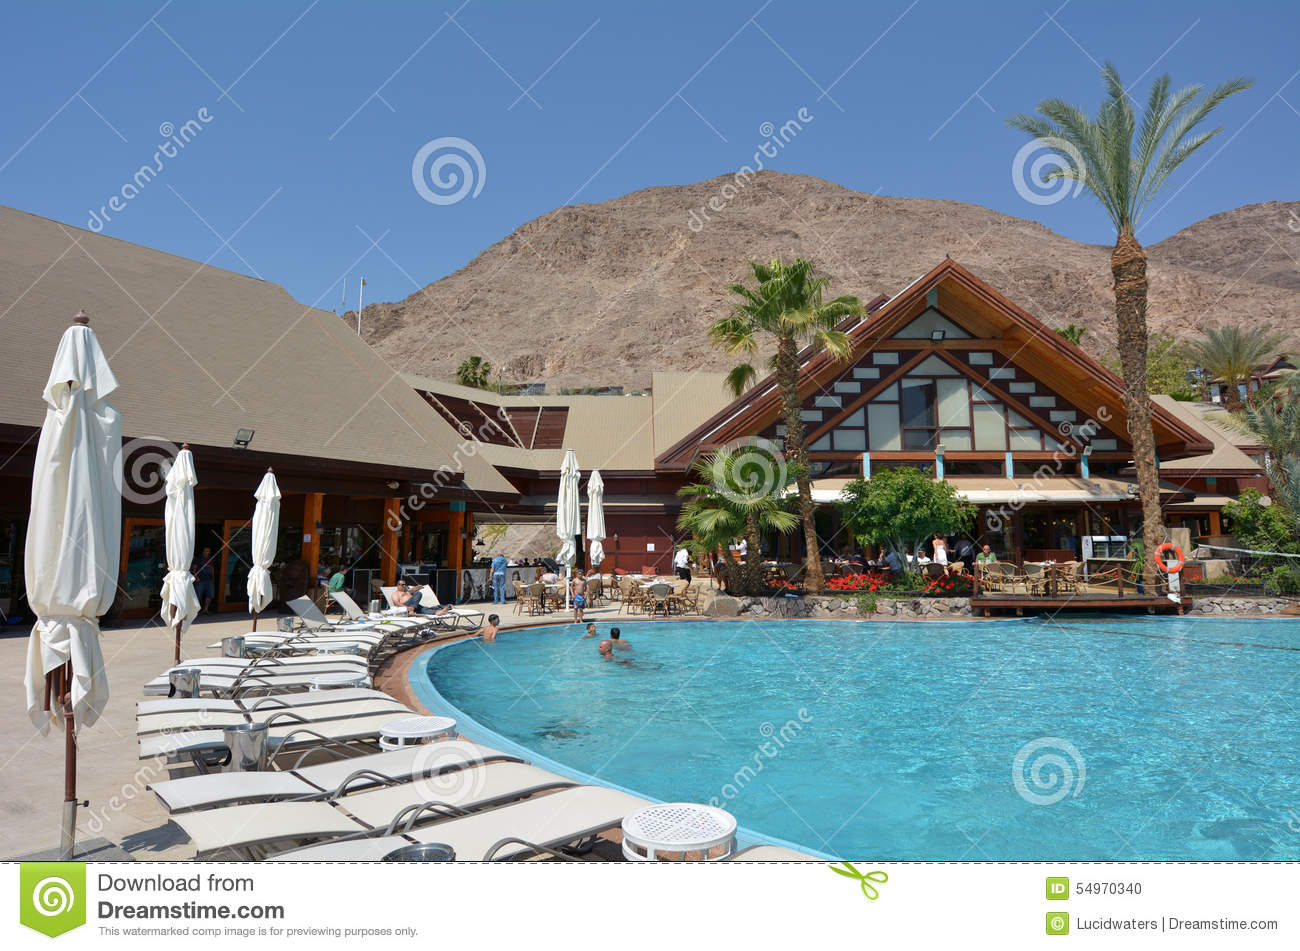 orchid hotel and resort in eilat israel editorial image - image